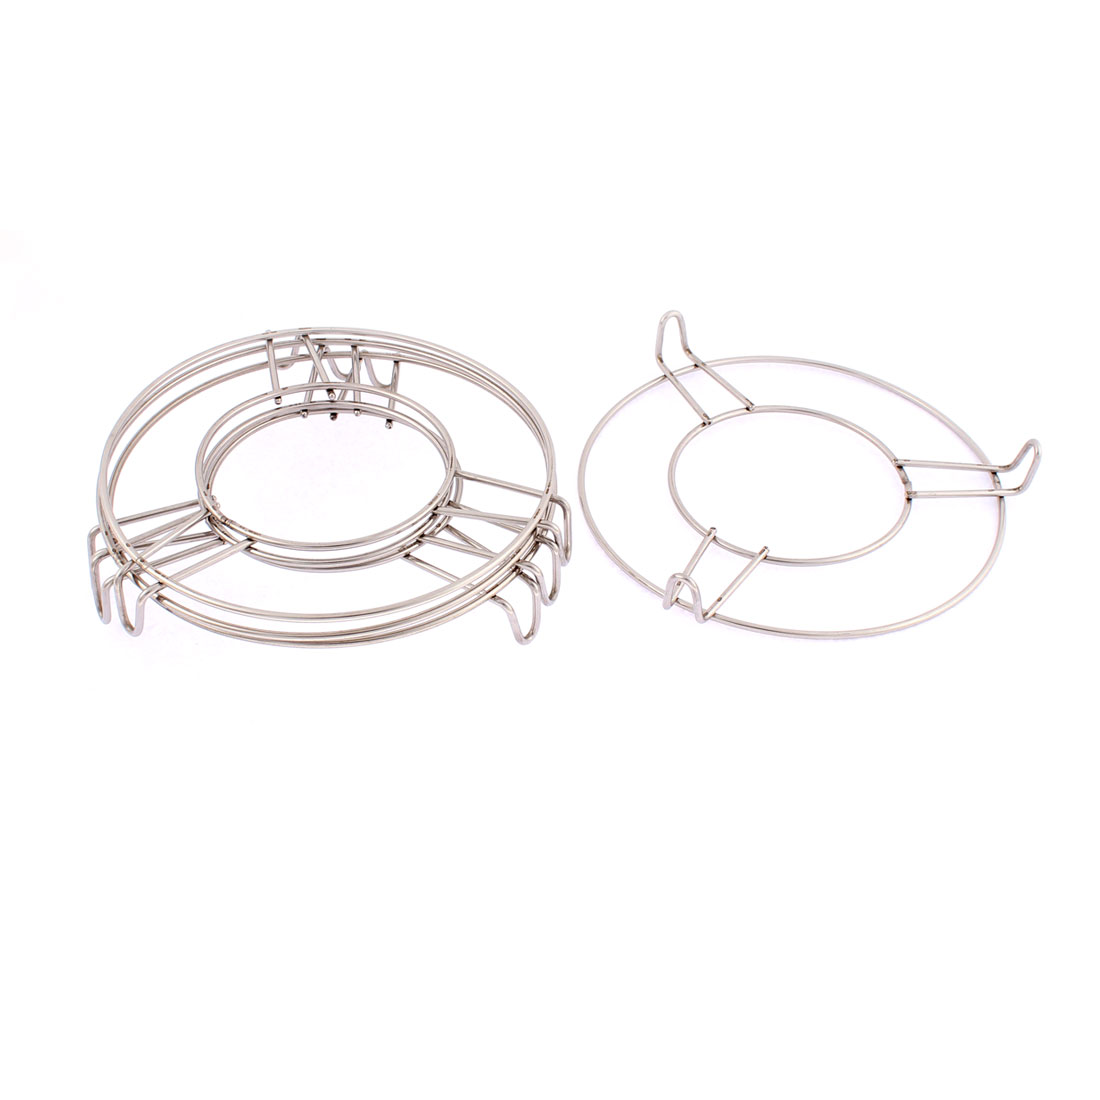 Stainless Steel Round Food Steaming Rack Stand 6 Inch x 1 Inch 4 Pcs